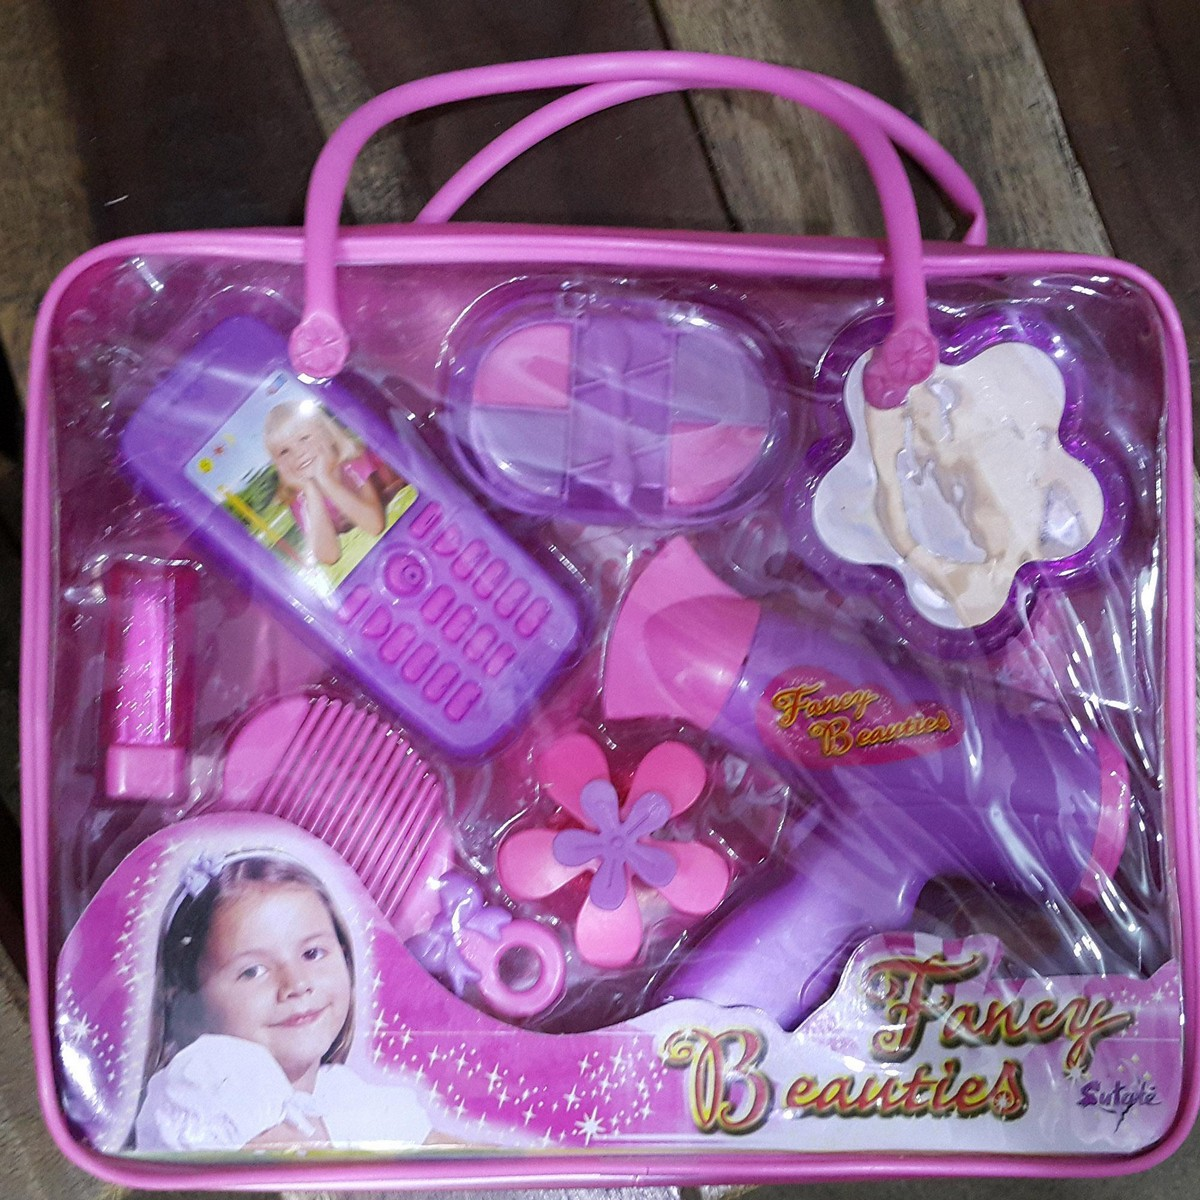 Girls Beauty/Make Up Kit Toys with Portable Bag Girls/Baby/Kids Toys, Girls Beauty Toys, Beauty Kit with Bag Make Up Kit Kids Toys Multi in 1 - KBKB